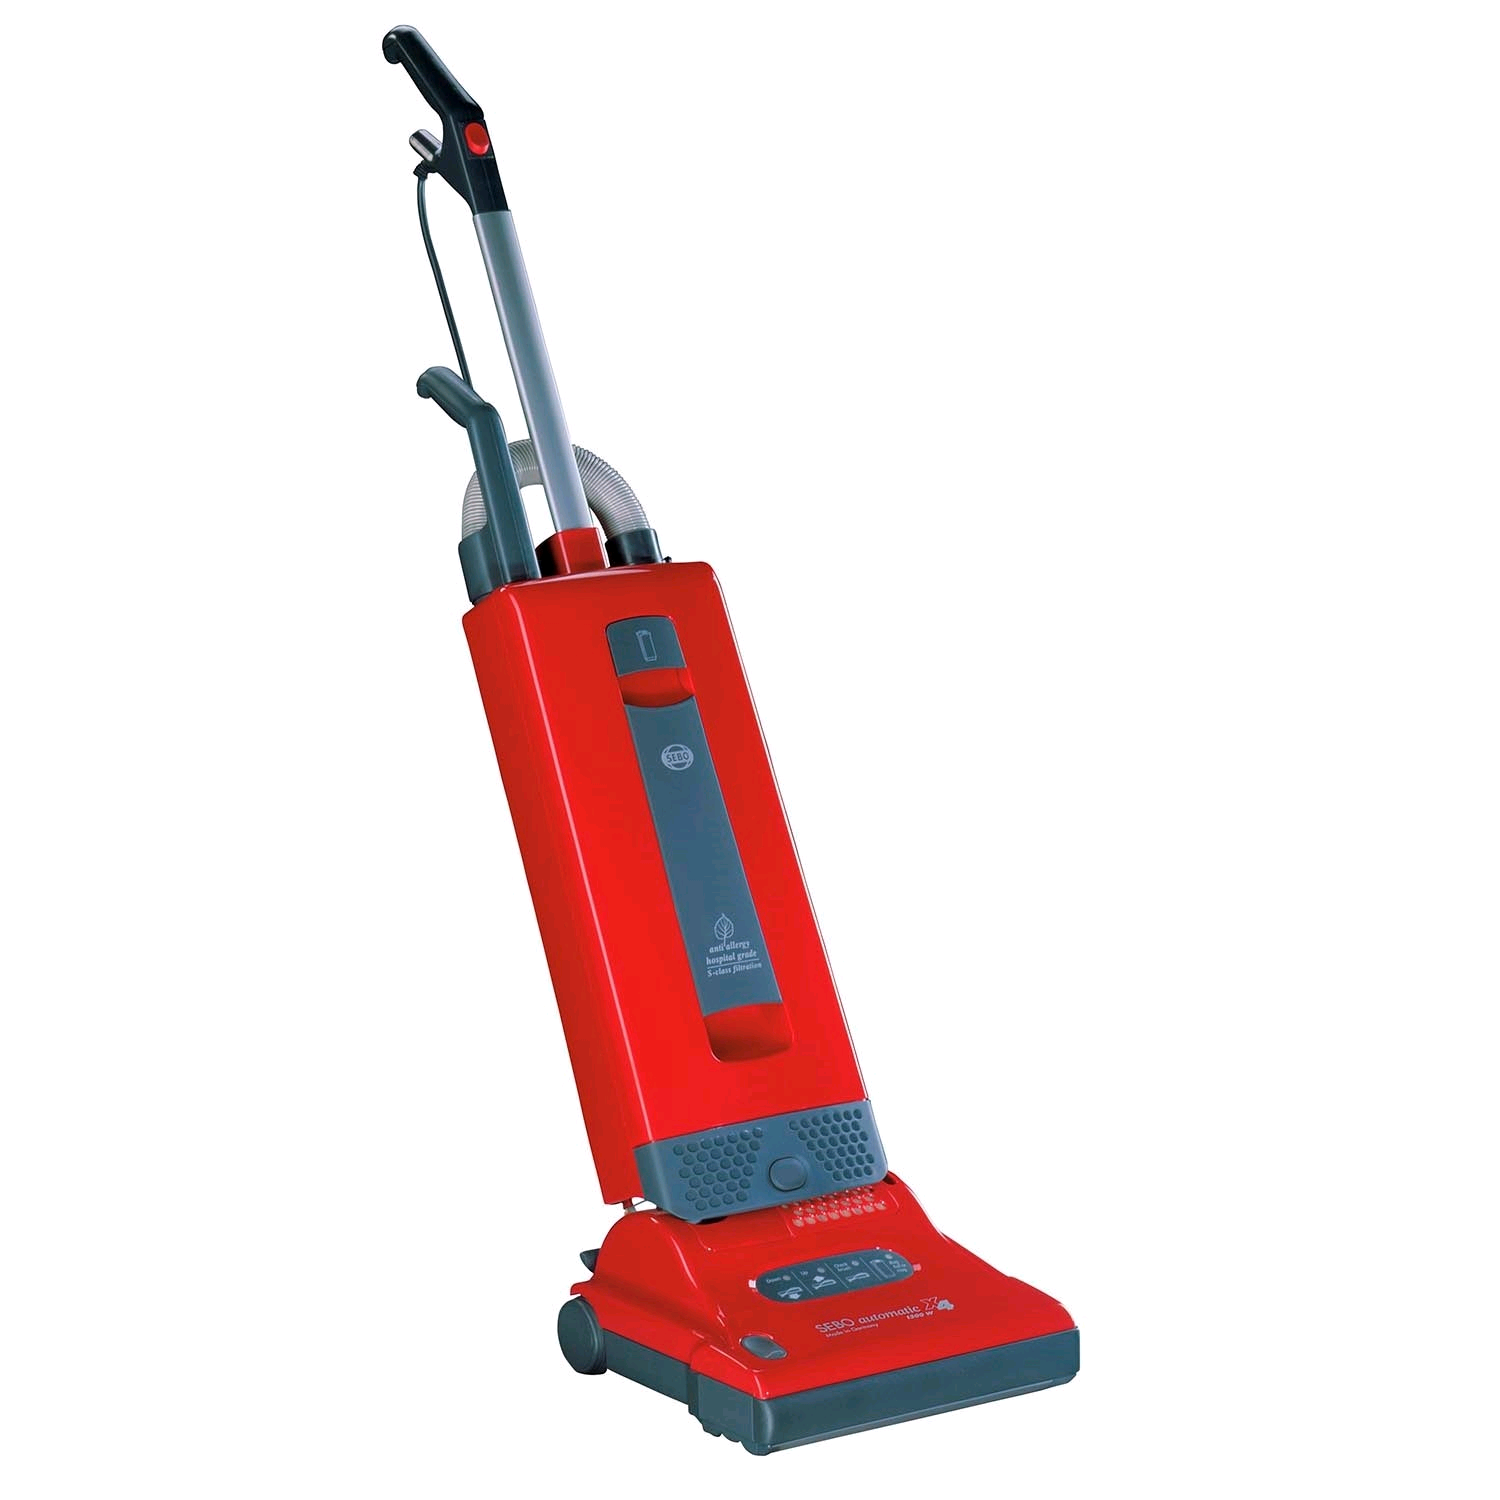 Sebo X4 Upright Vacuum Cleaner Bagged 1100w Red